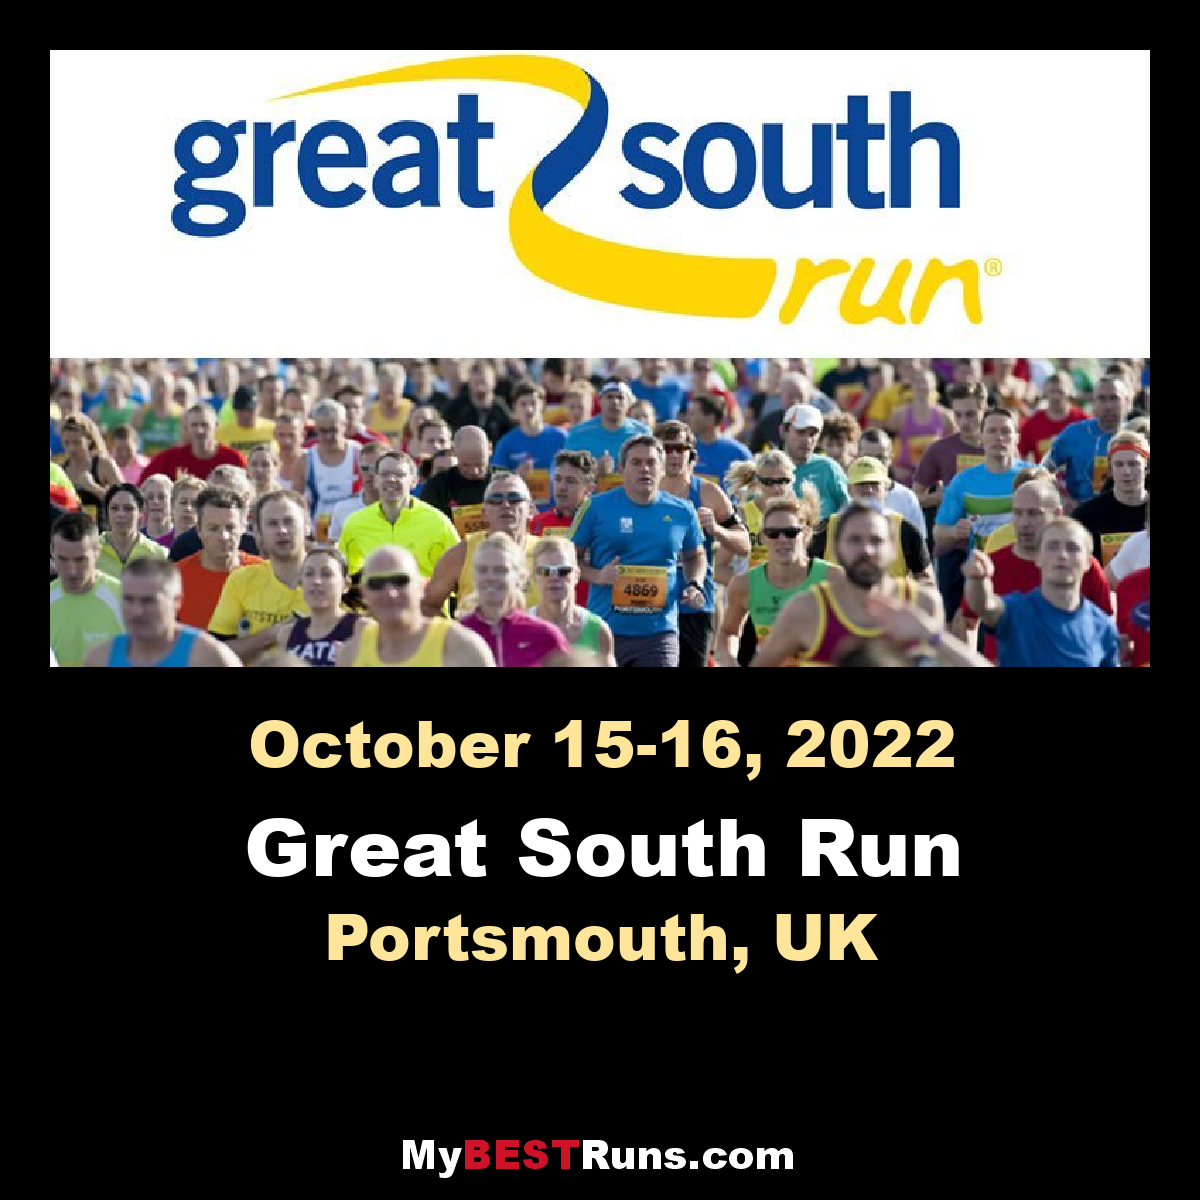 Great South Run